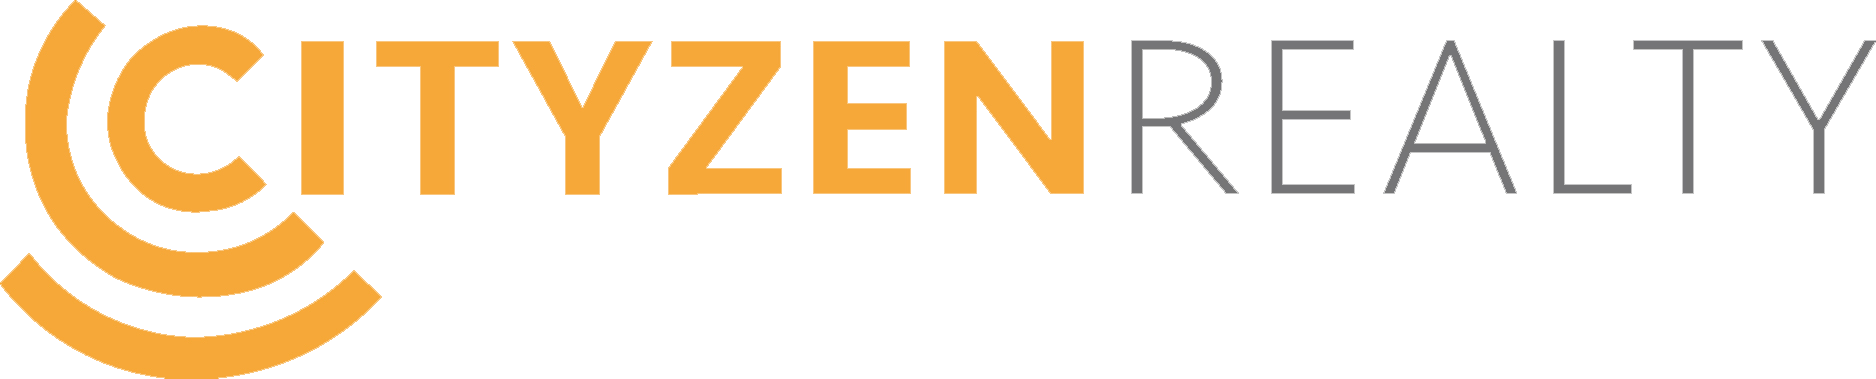 City Zen Realty